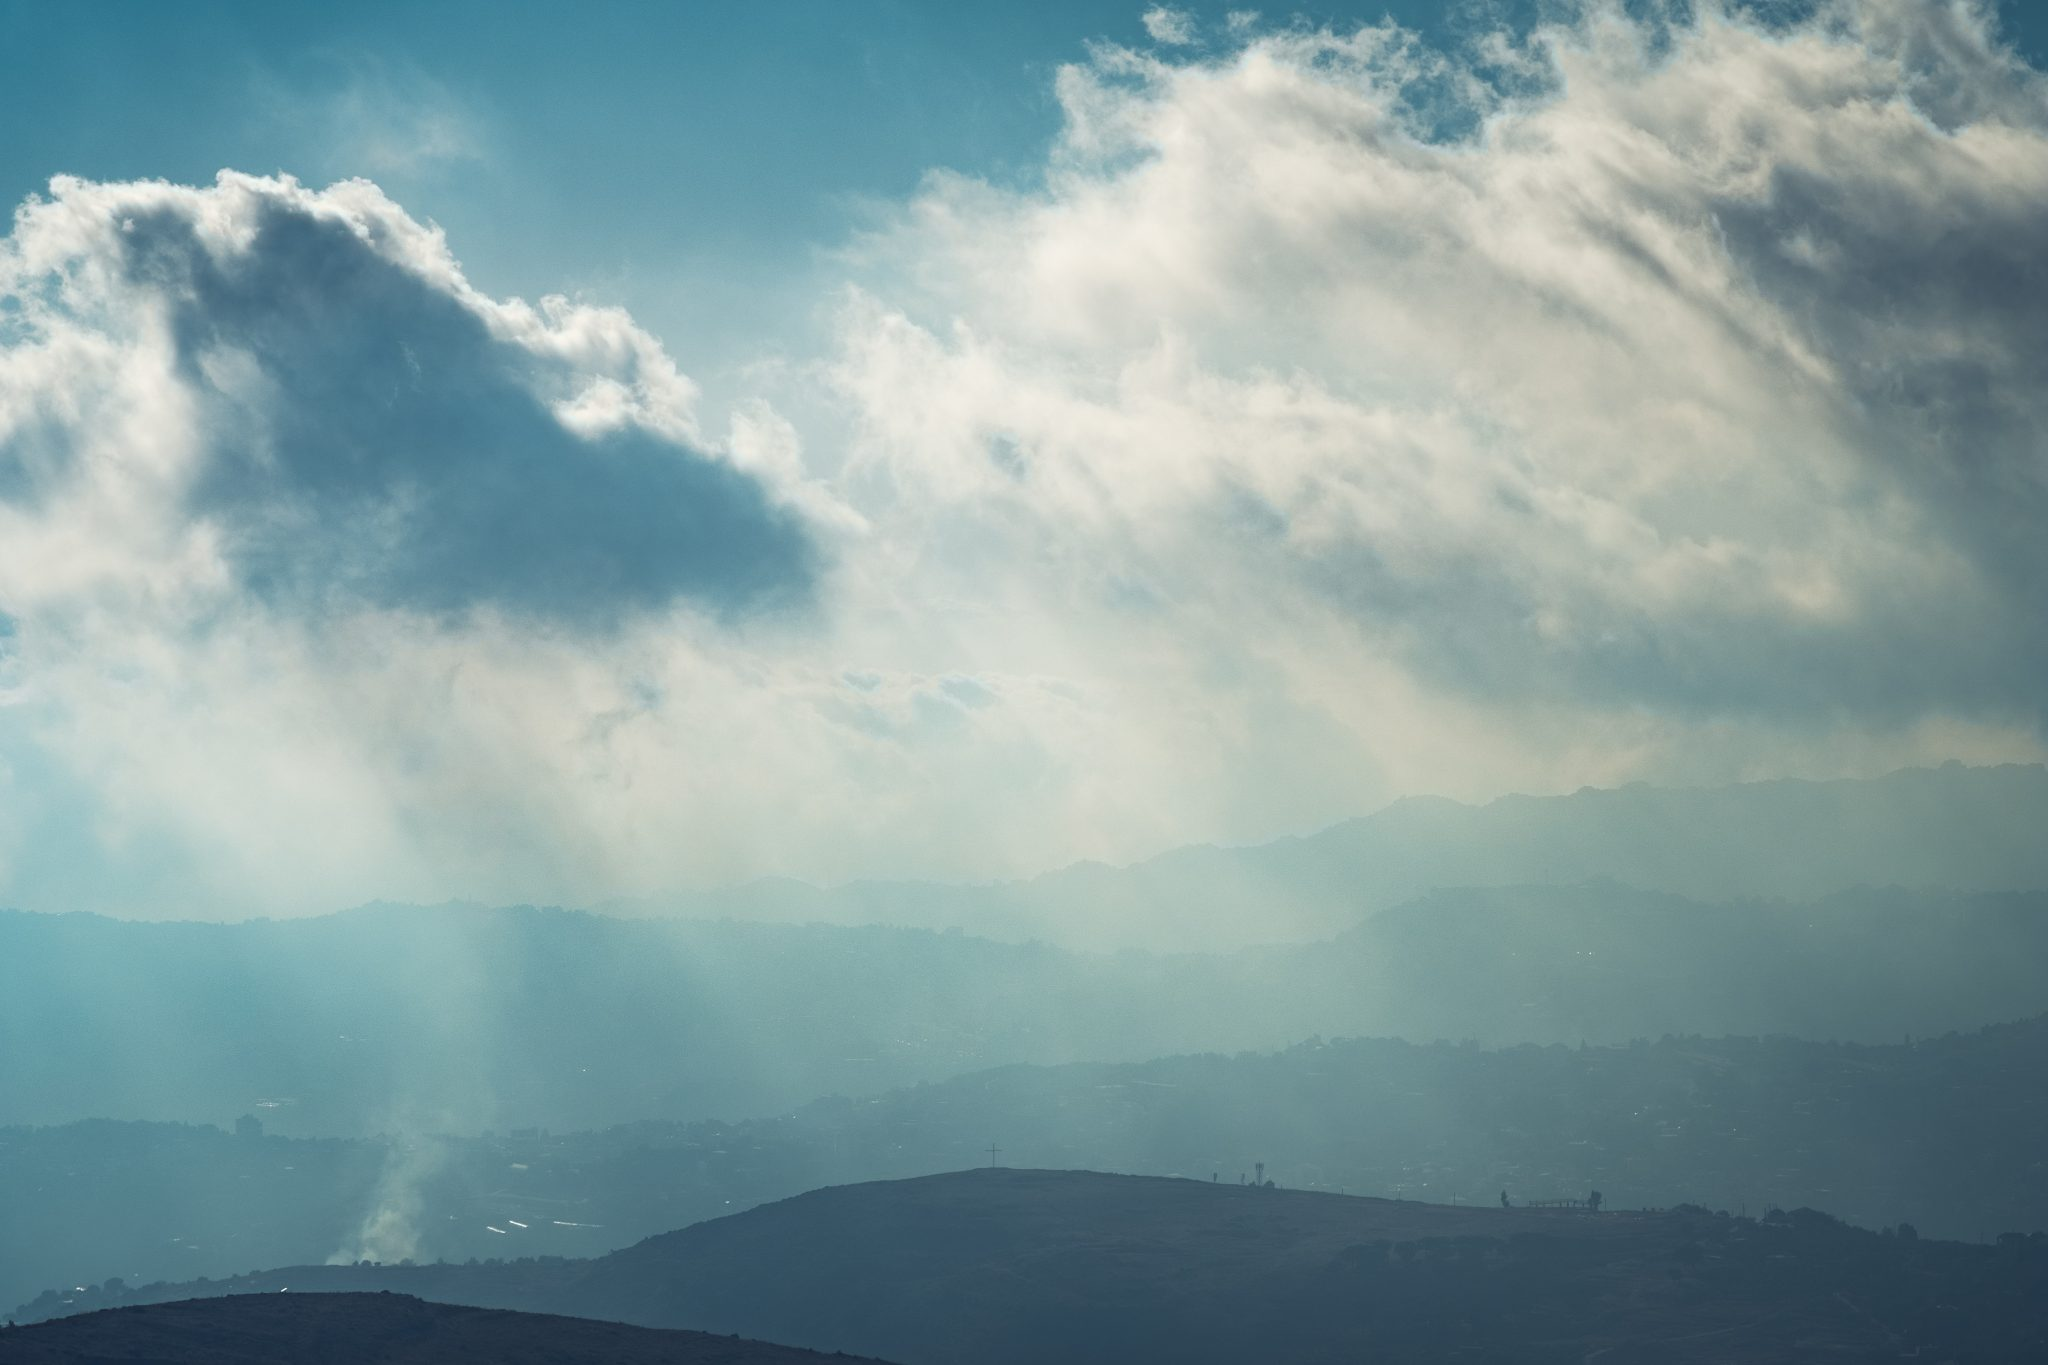 Dramatic view of the clouds above the lebanese mountains photo by Jo Kassis